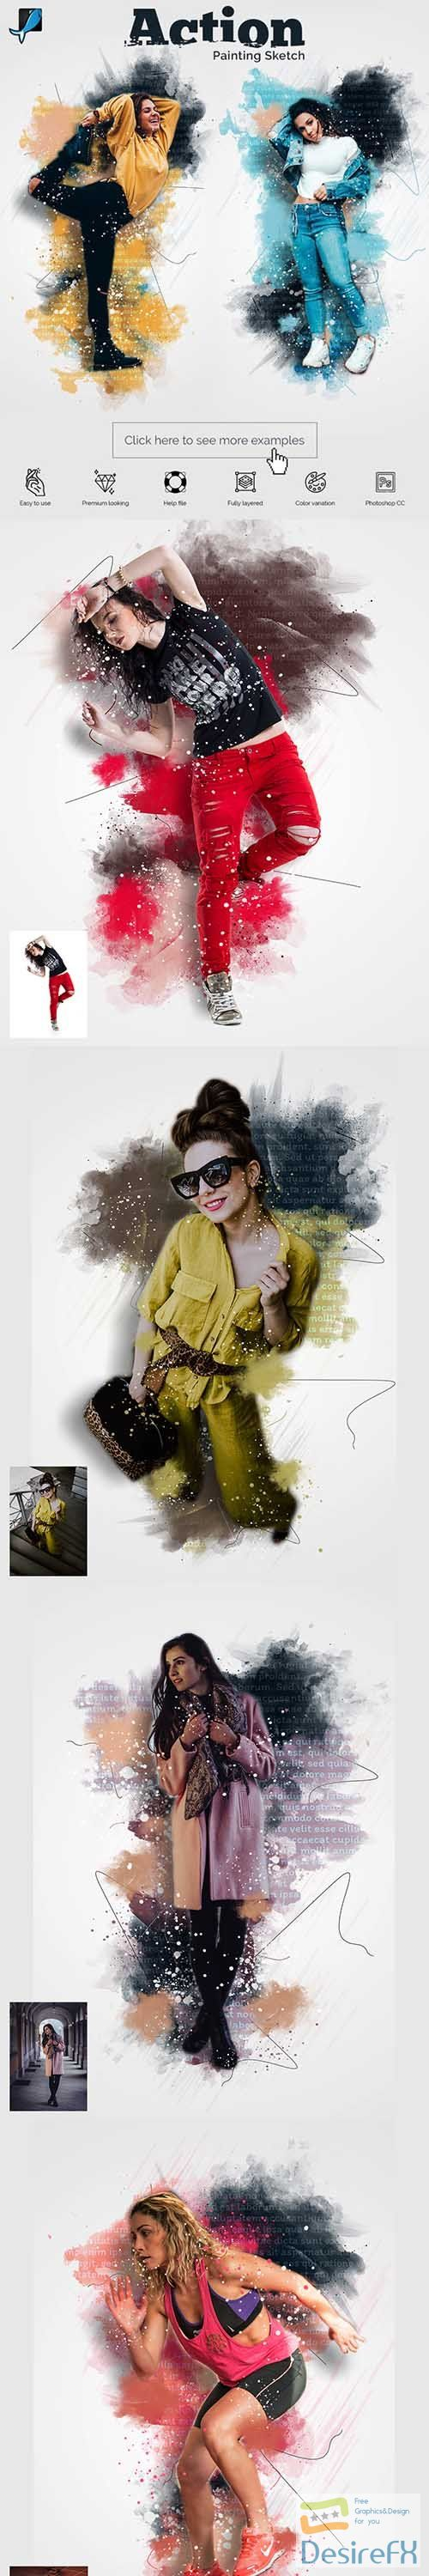 GraphicRiver - Painting Sketch Photoshop Action 29477559